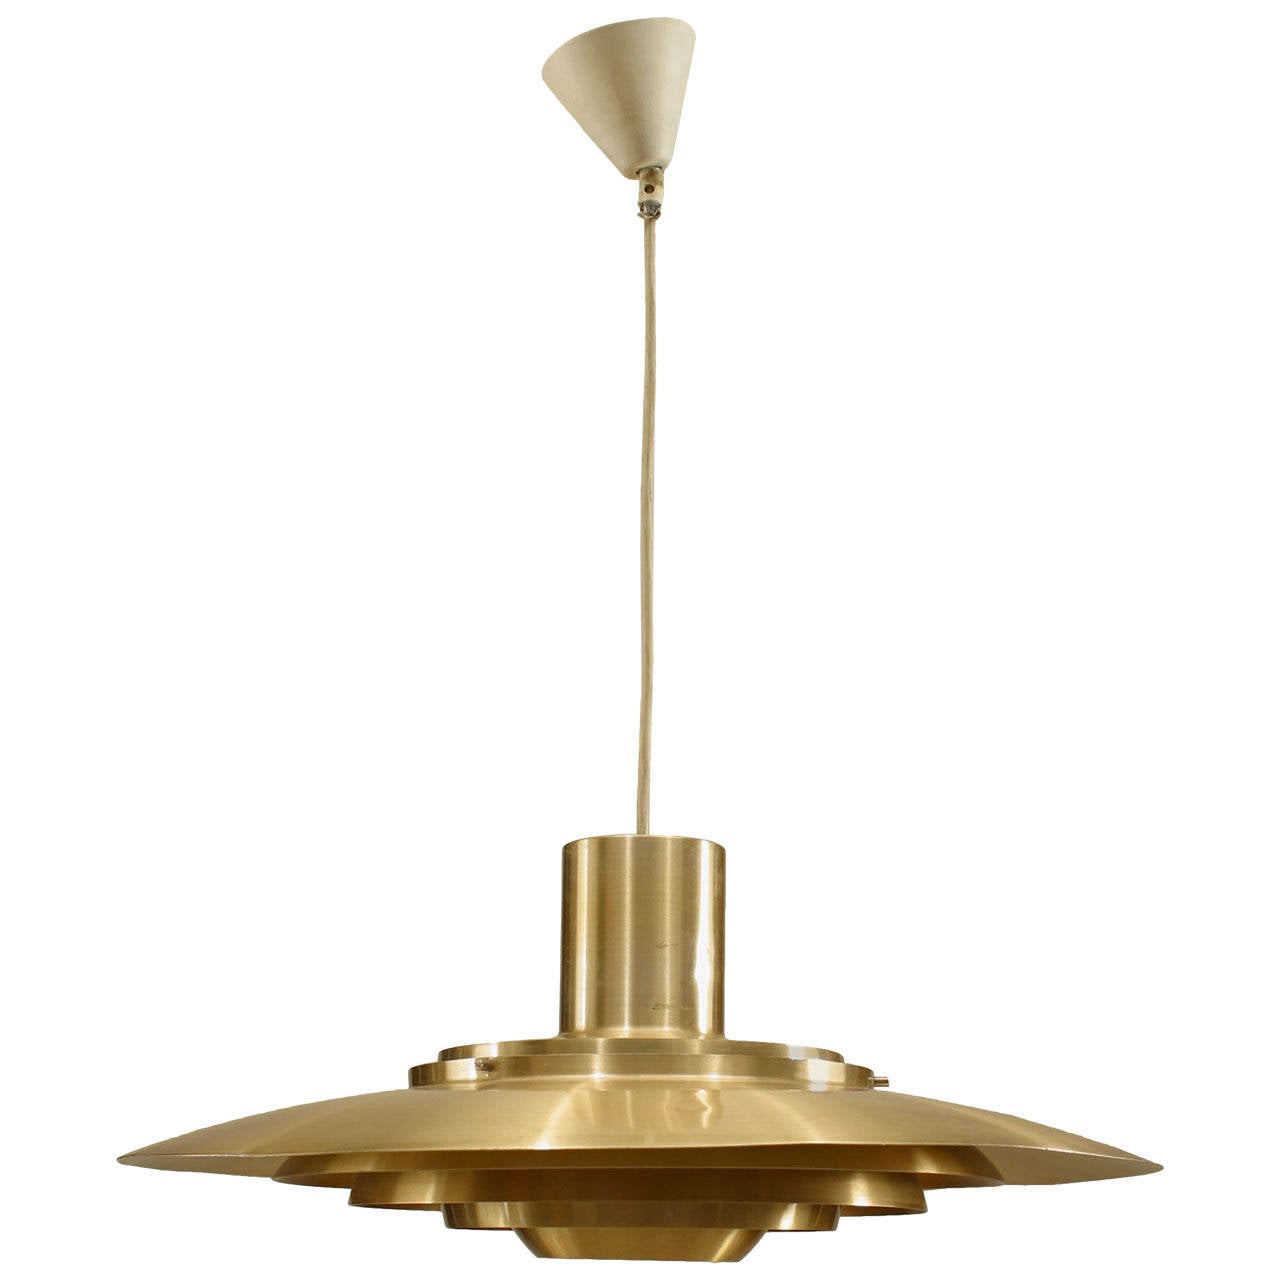 Scandinavian mid century modern brass disc pendant light Modern pendant lighting